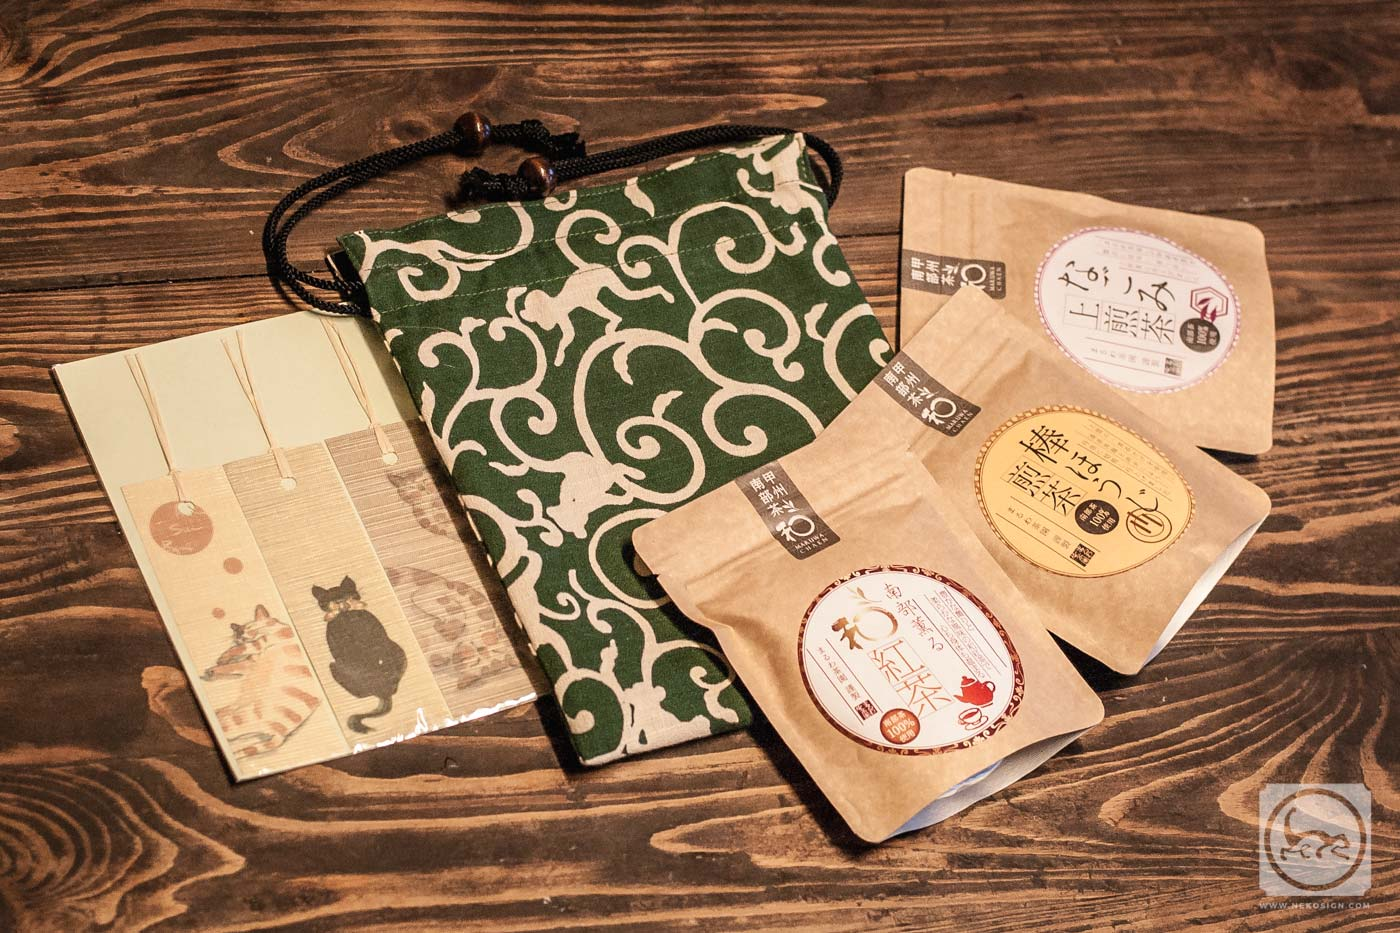 Thés, tote bag et marques-page - Packaging Made in japan